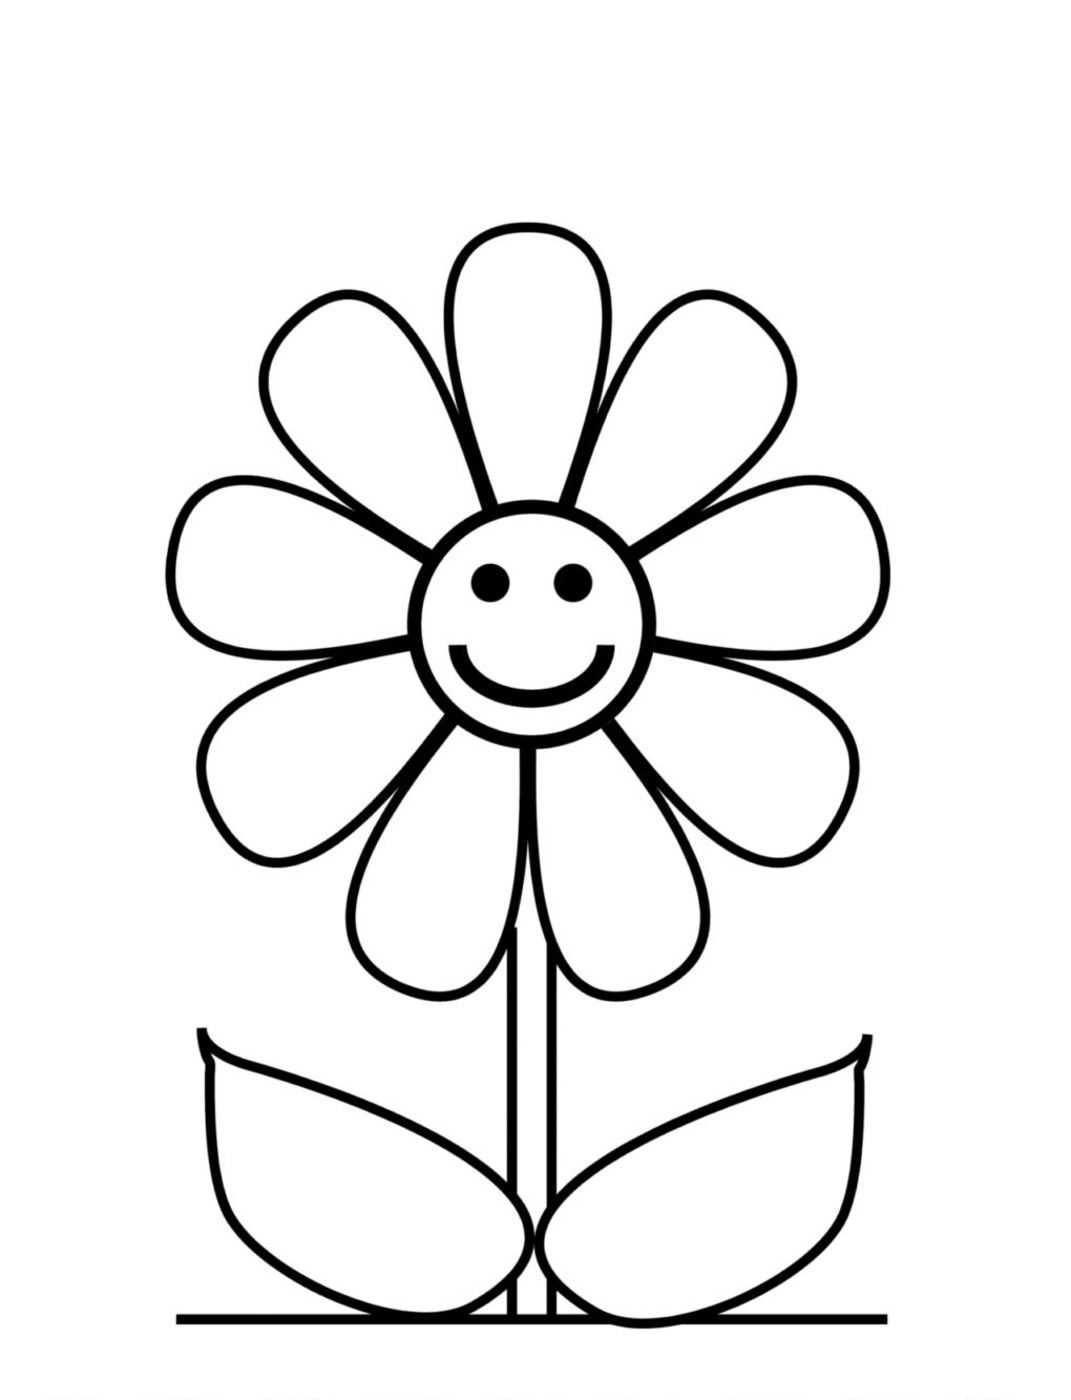 Flower Coloring Pages Coloring Town Easy Flower Drawings Flower Coloring Pages Simple Flower Drawing